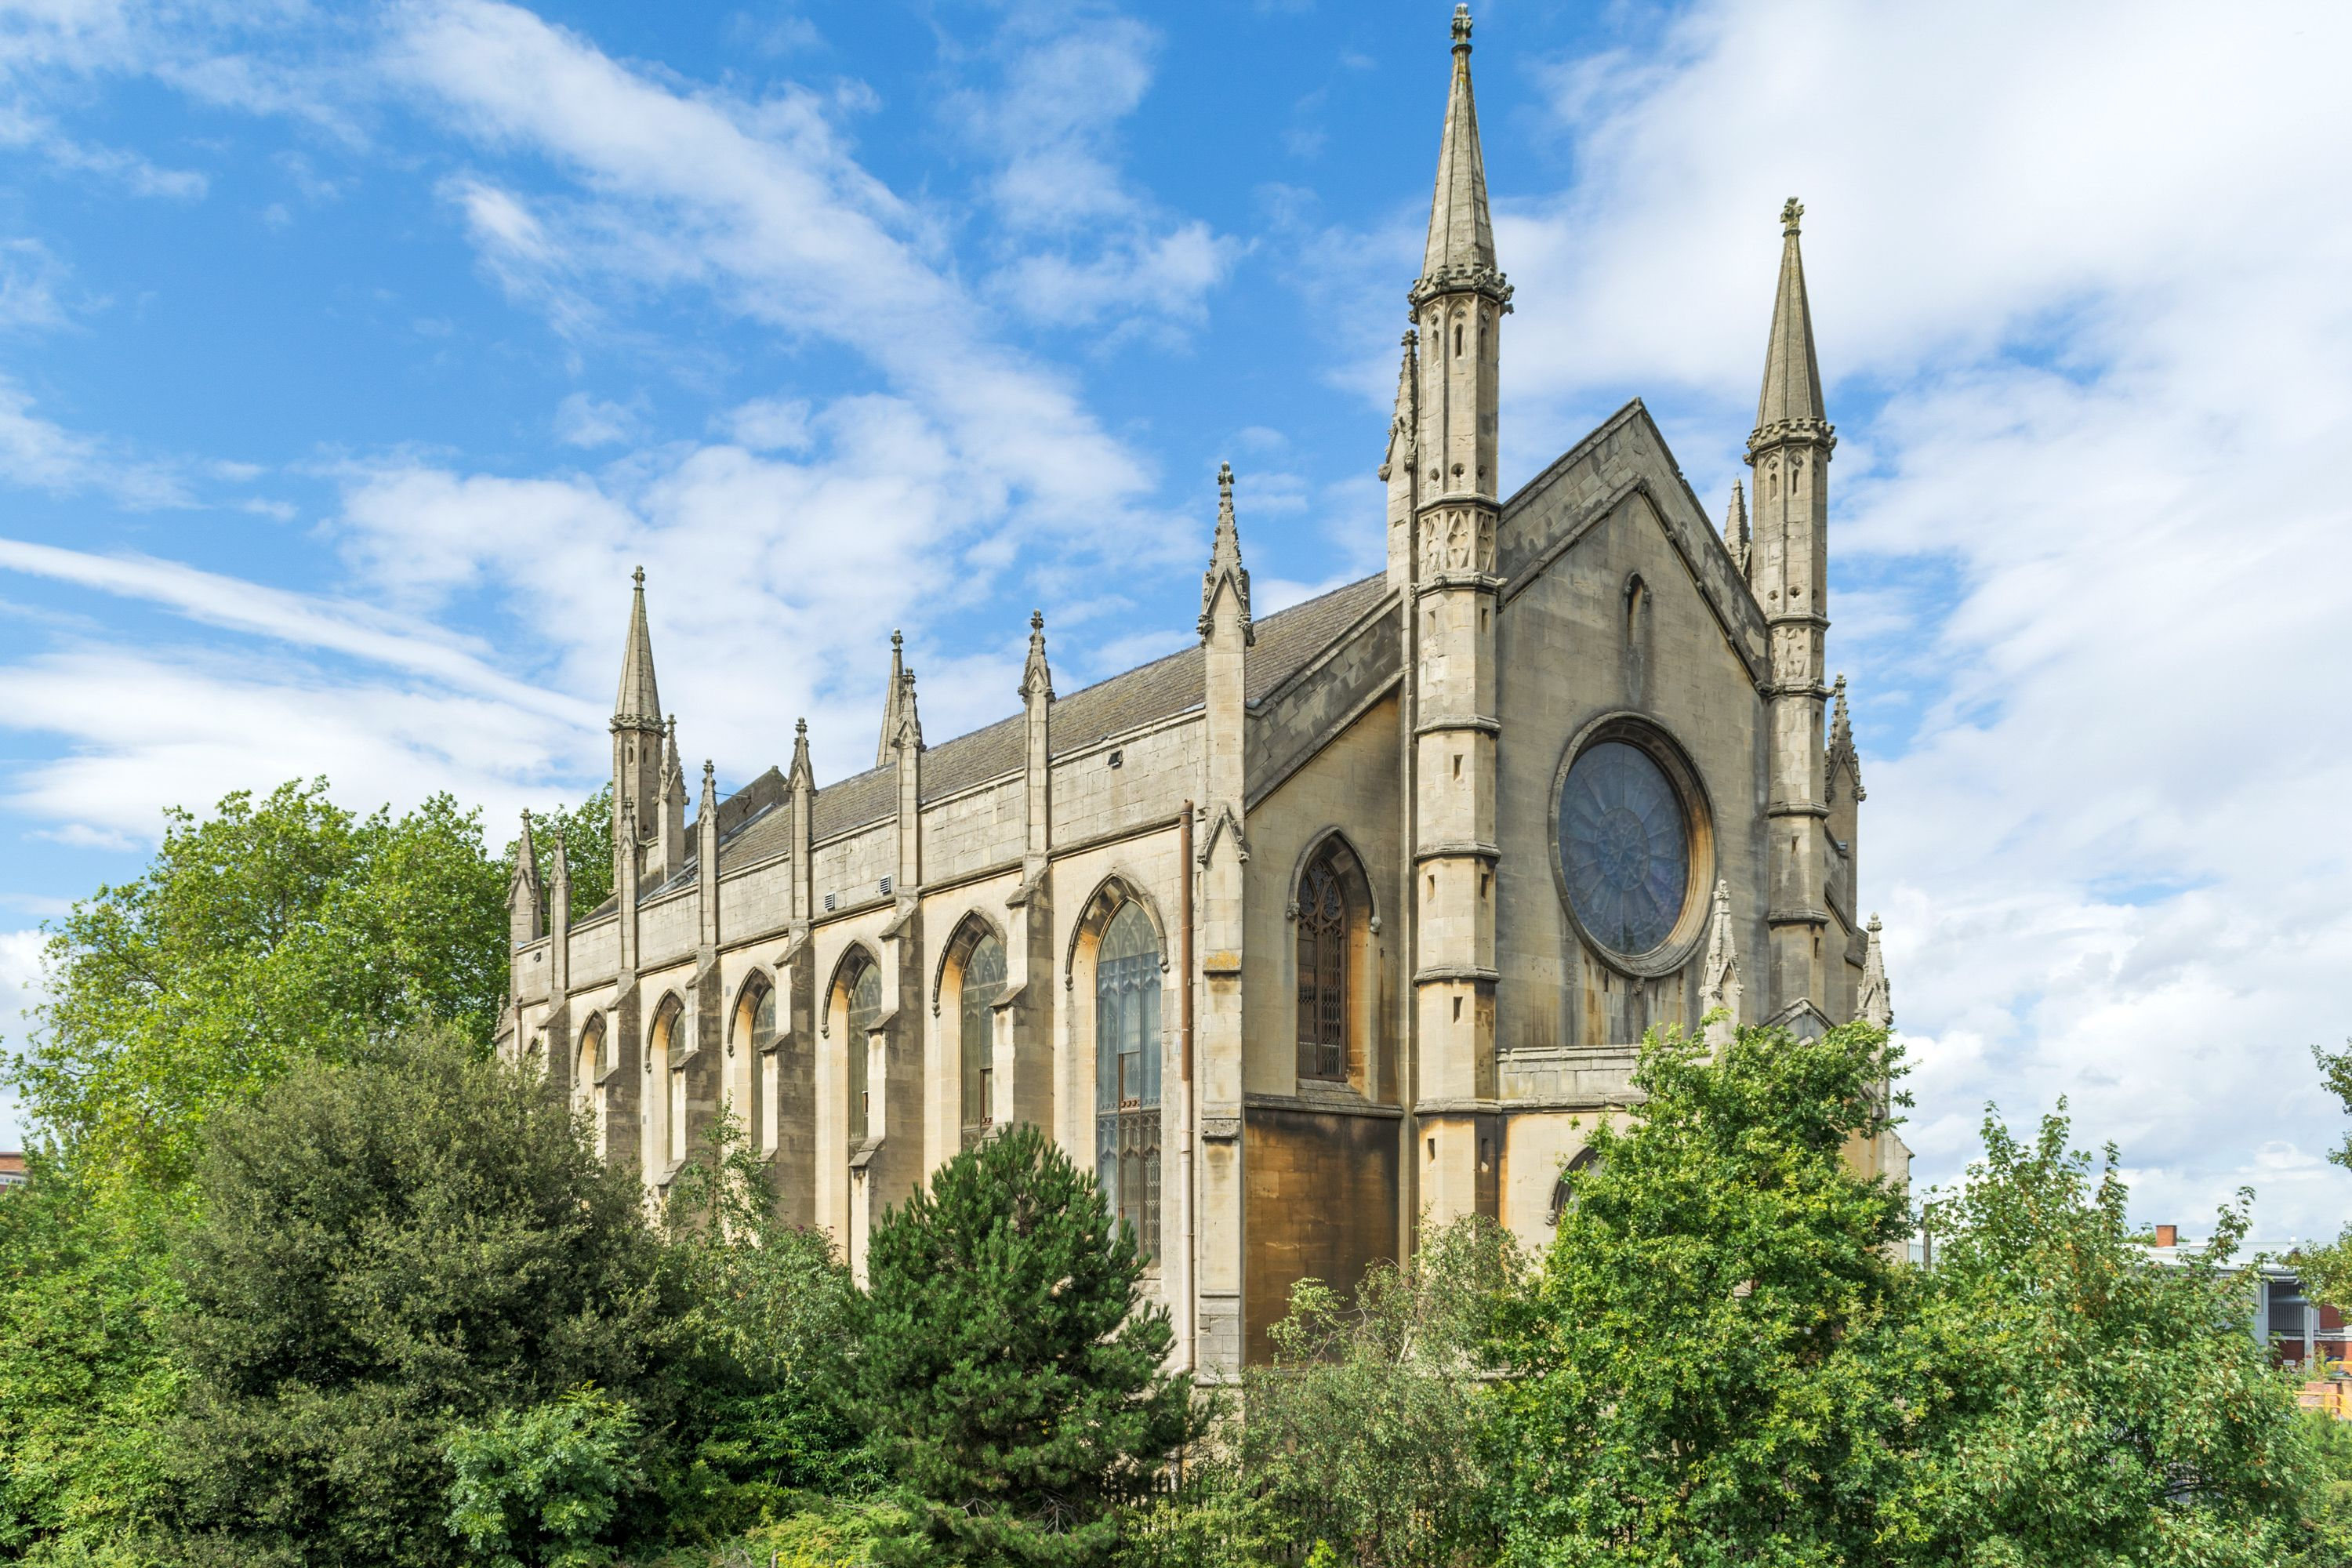 Preaching to the converted: Homes with church connections